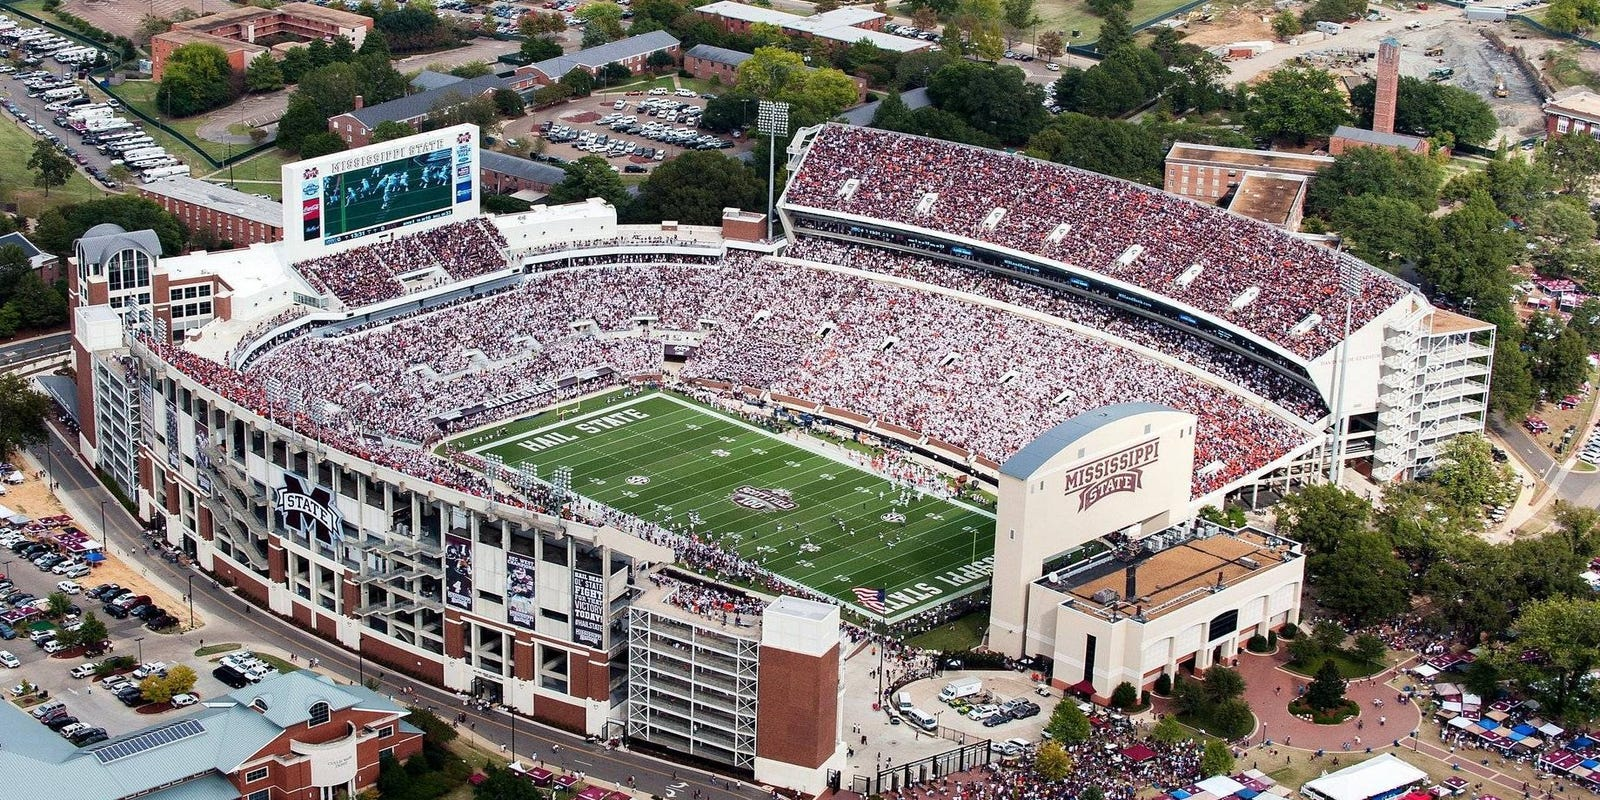 MSU stadium was locked, but Jumbotron questions remain